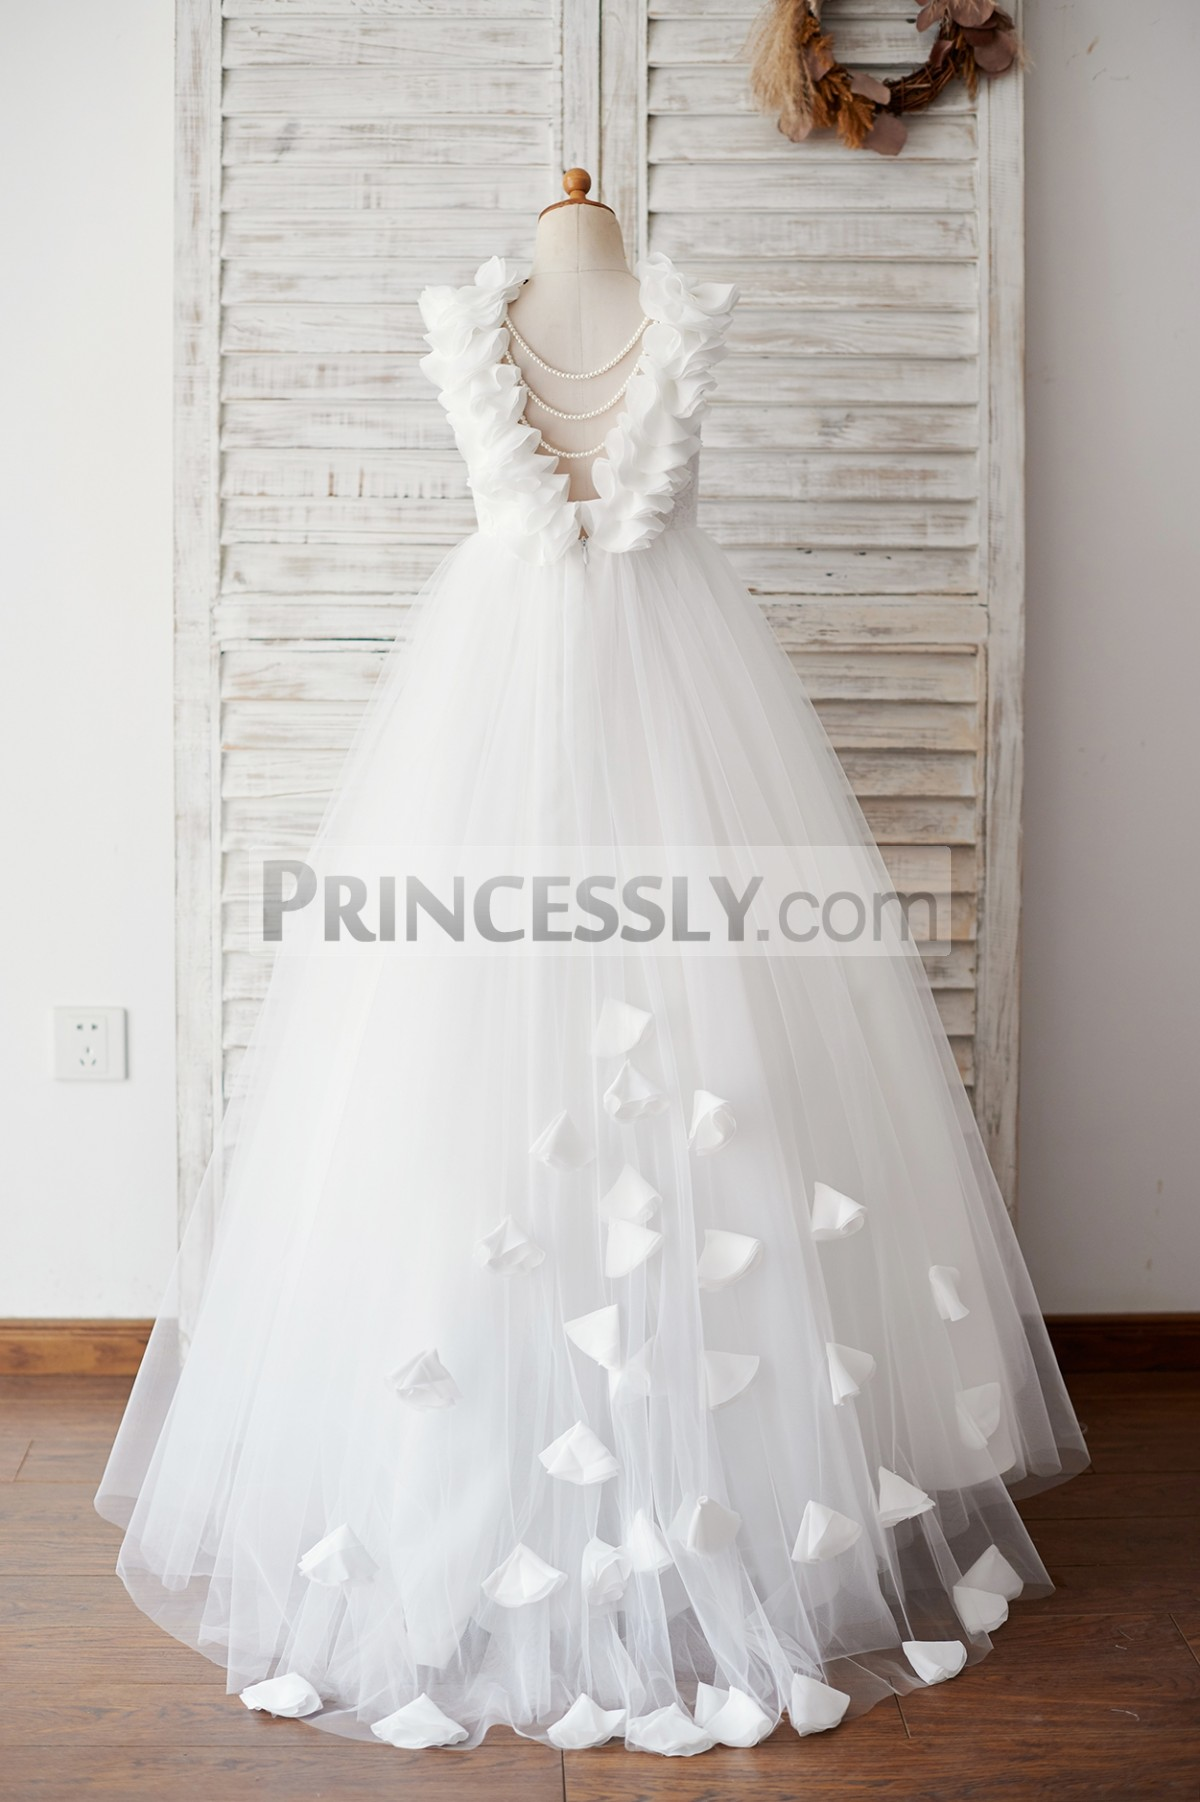 3D flowers V neck back wedding baby girl dress with small train